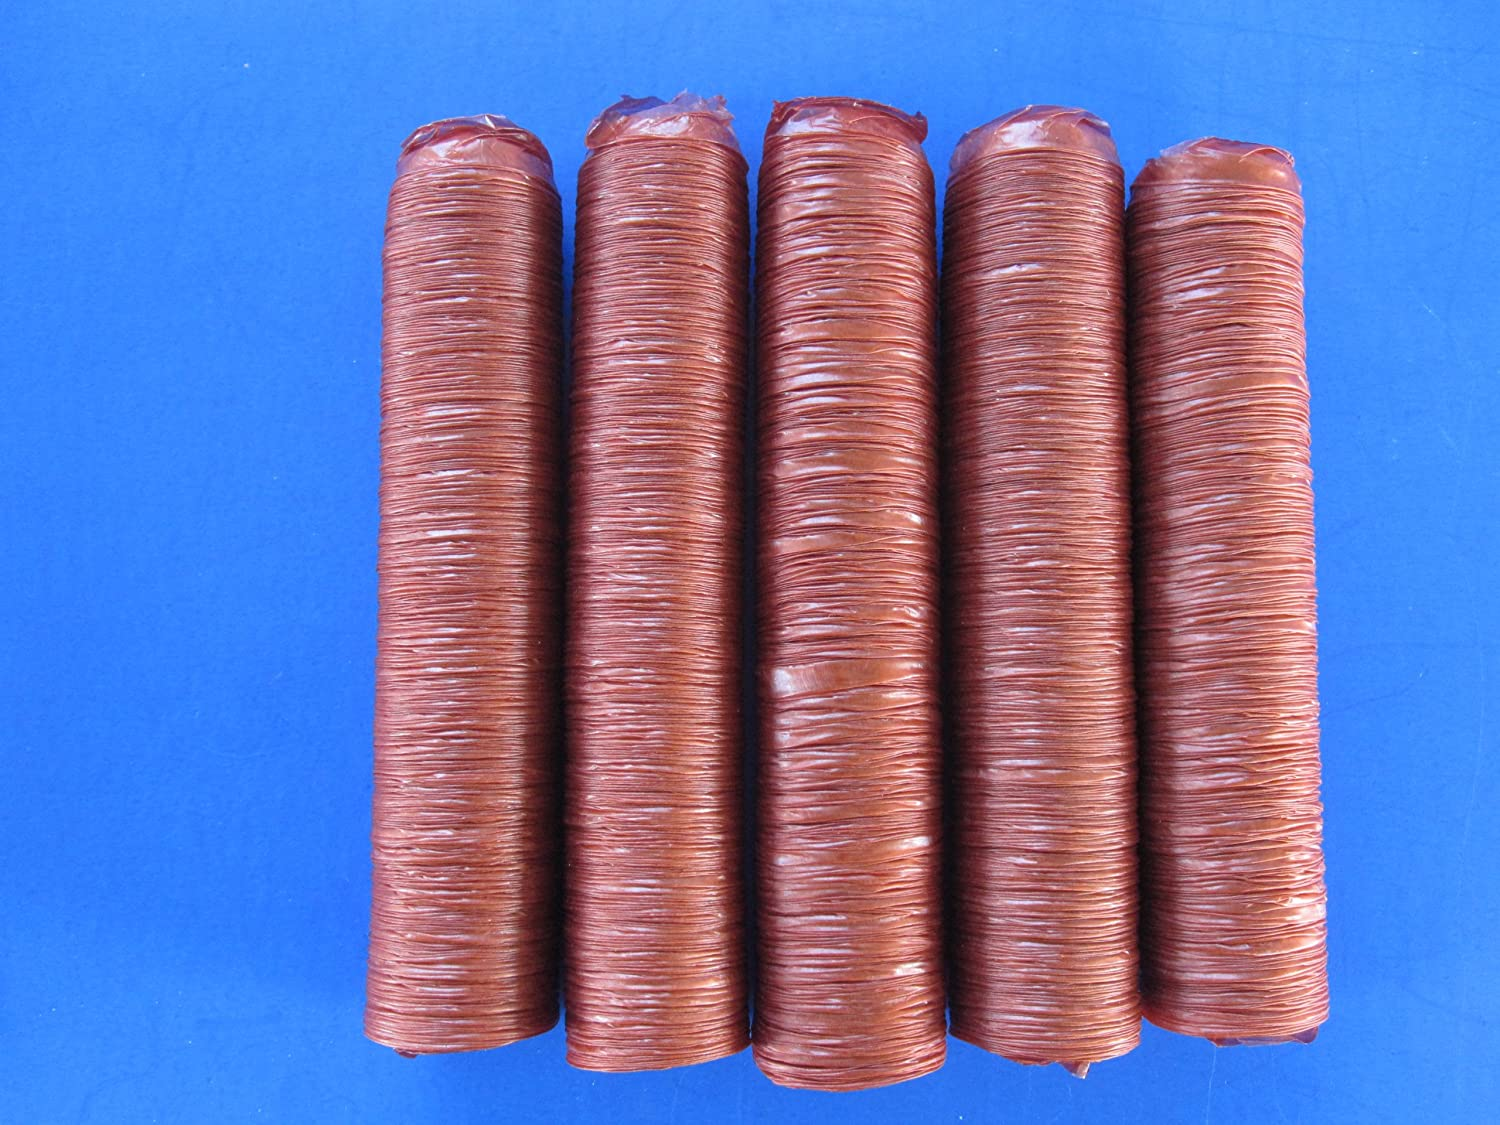 Smokehouse Chef EDIBLE 21 mm Snack Stick Collagen Casing for 25 lbs of Homemade Snack sticks, Slim Jims, Pepperoni etc.